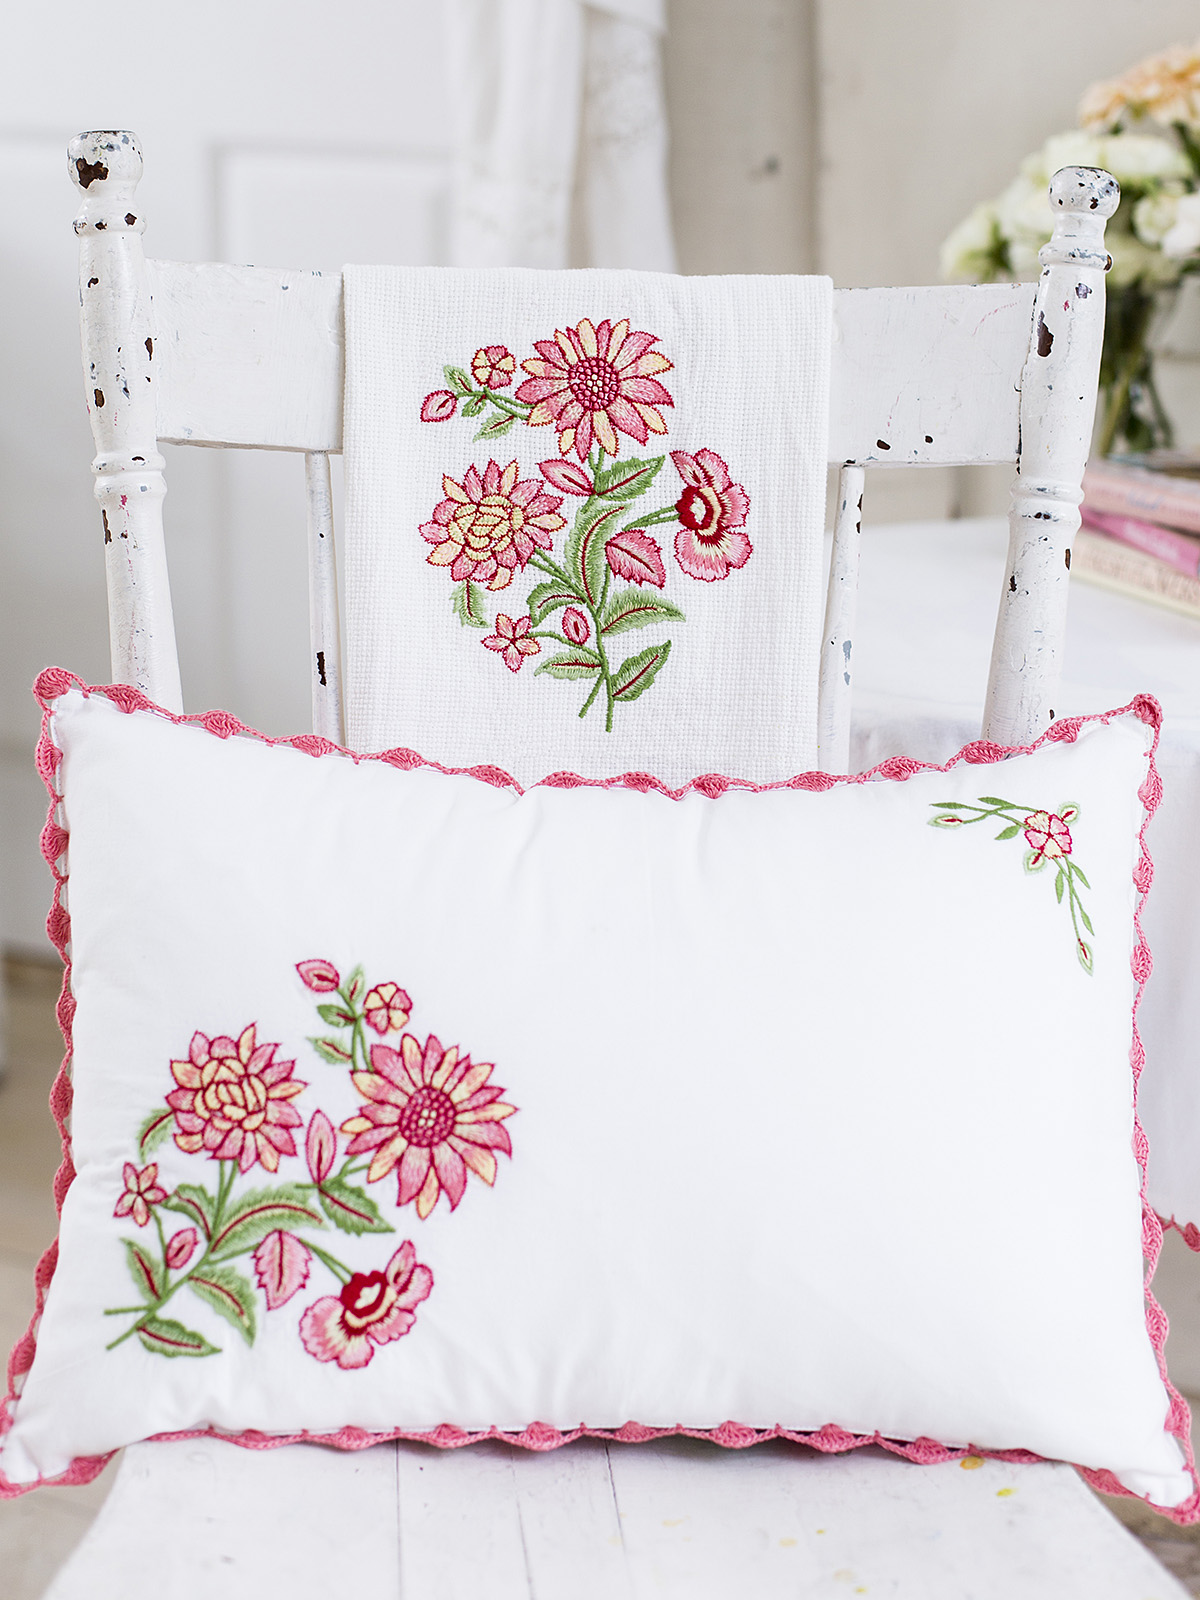 Spring Bouquet Embroidery Cushion